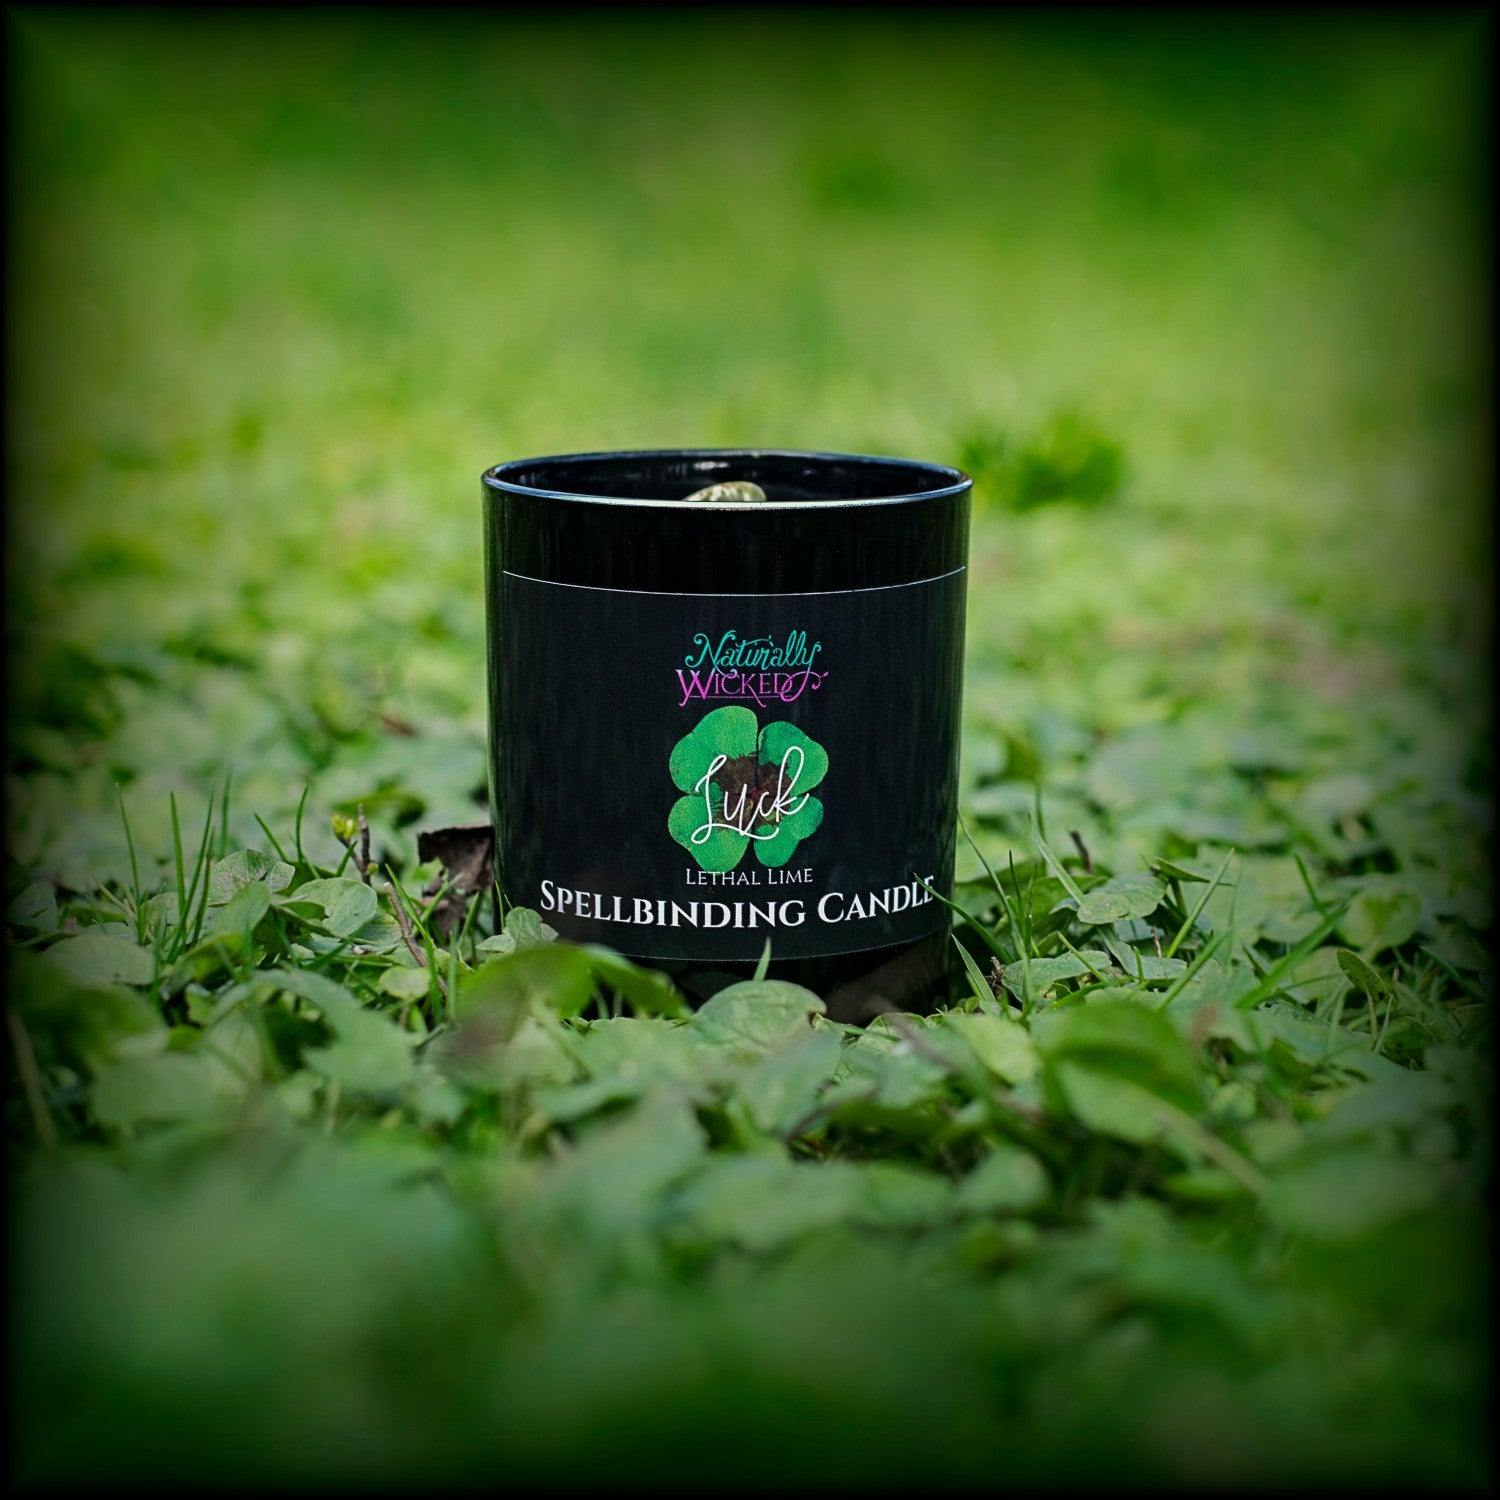 Naturally Wicked Spellbinding Luck Candle Entombed With Green Spotted Epidote Crystal Sits in Bright Green Clover Field